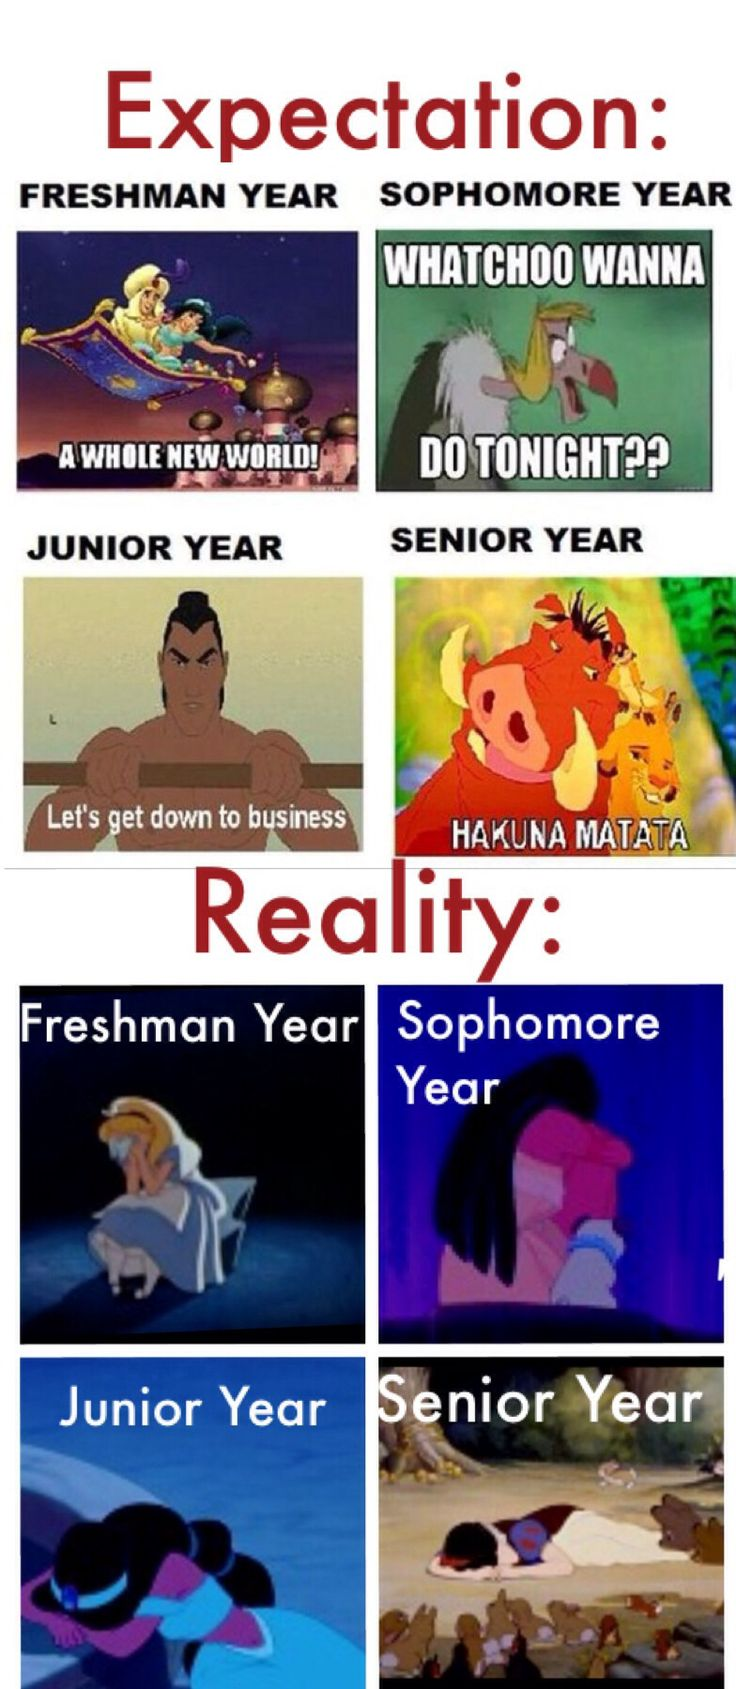 There are no words to describe how accurate this is! (High School & College)